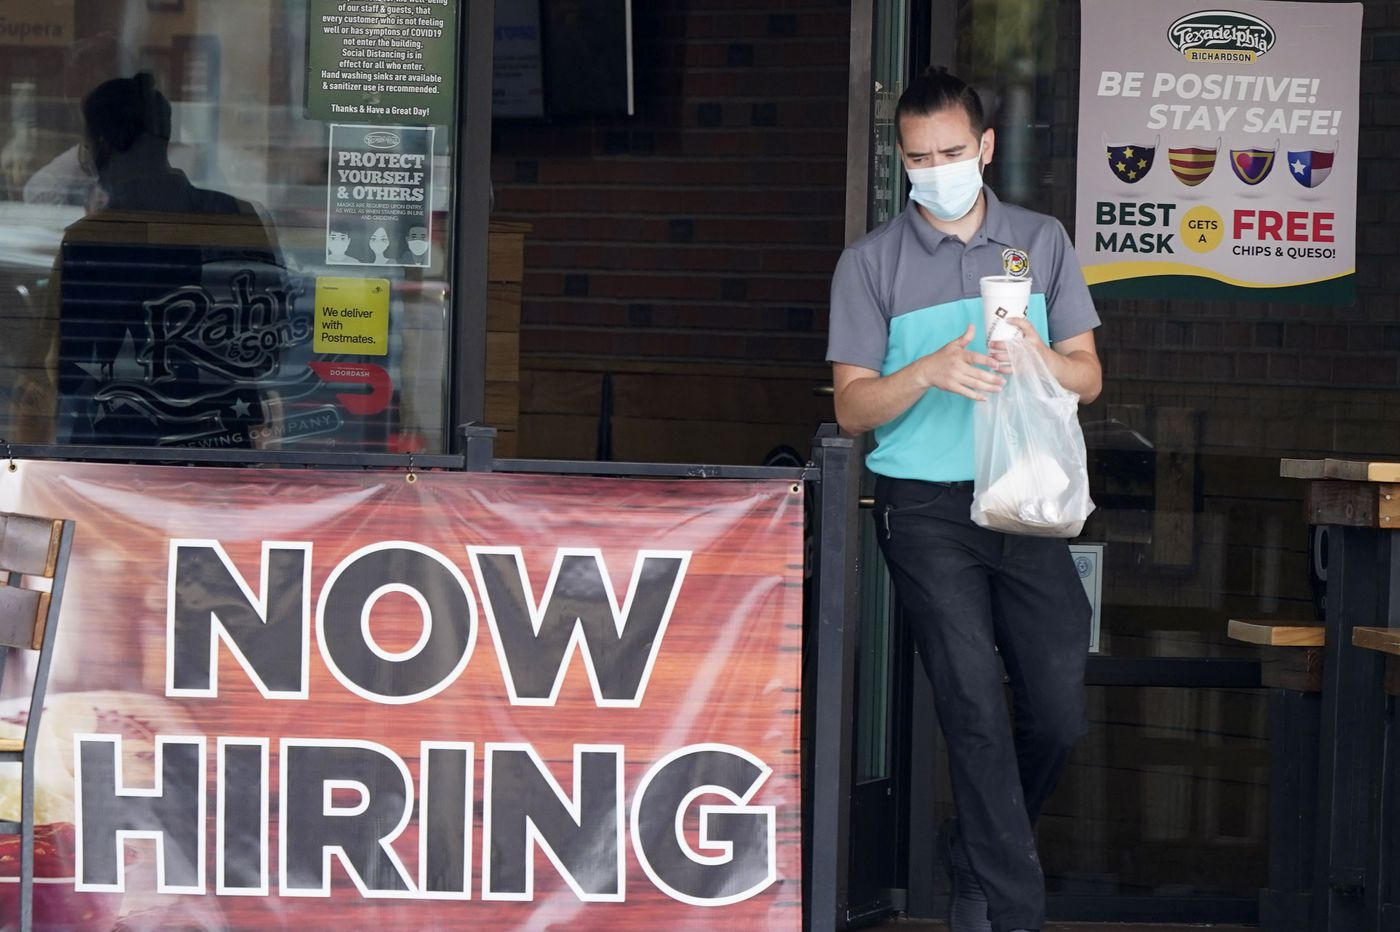 Unemployment drops to 6.9% and U.S. adds a solid 638,000 jobs